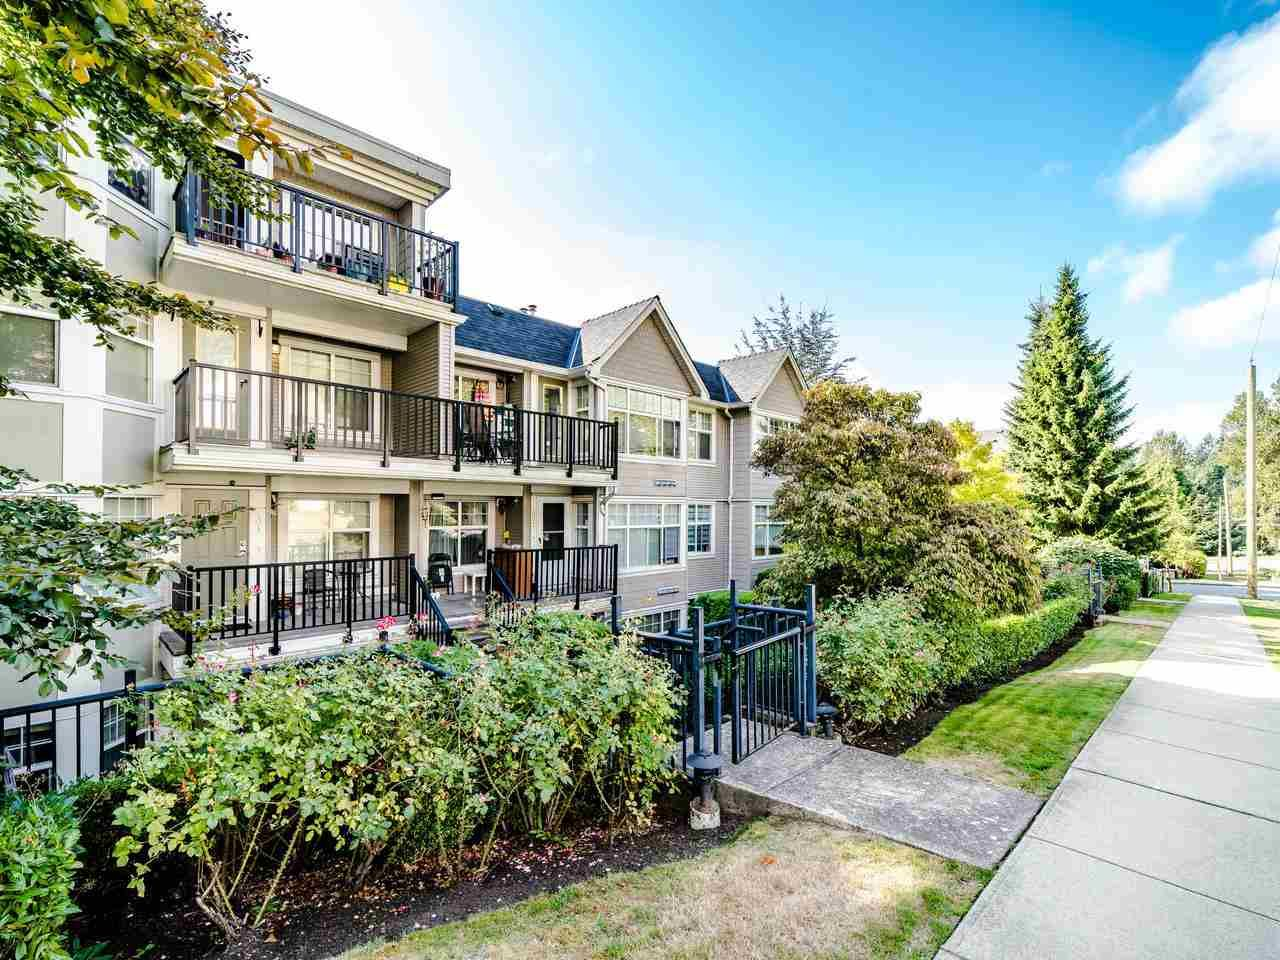 Main Photo: 102 7038 21ST AVENUE in Burnaby: Highgate Townhouse for sale (Burnaby South)  : MLS®# R2490267